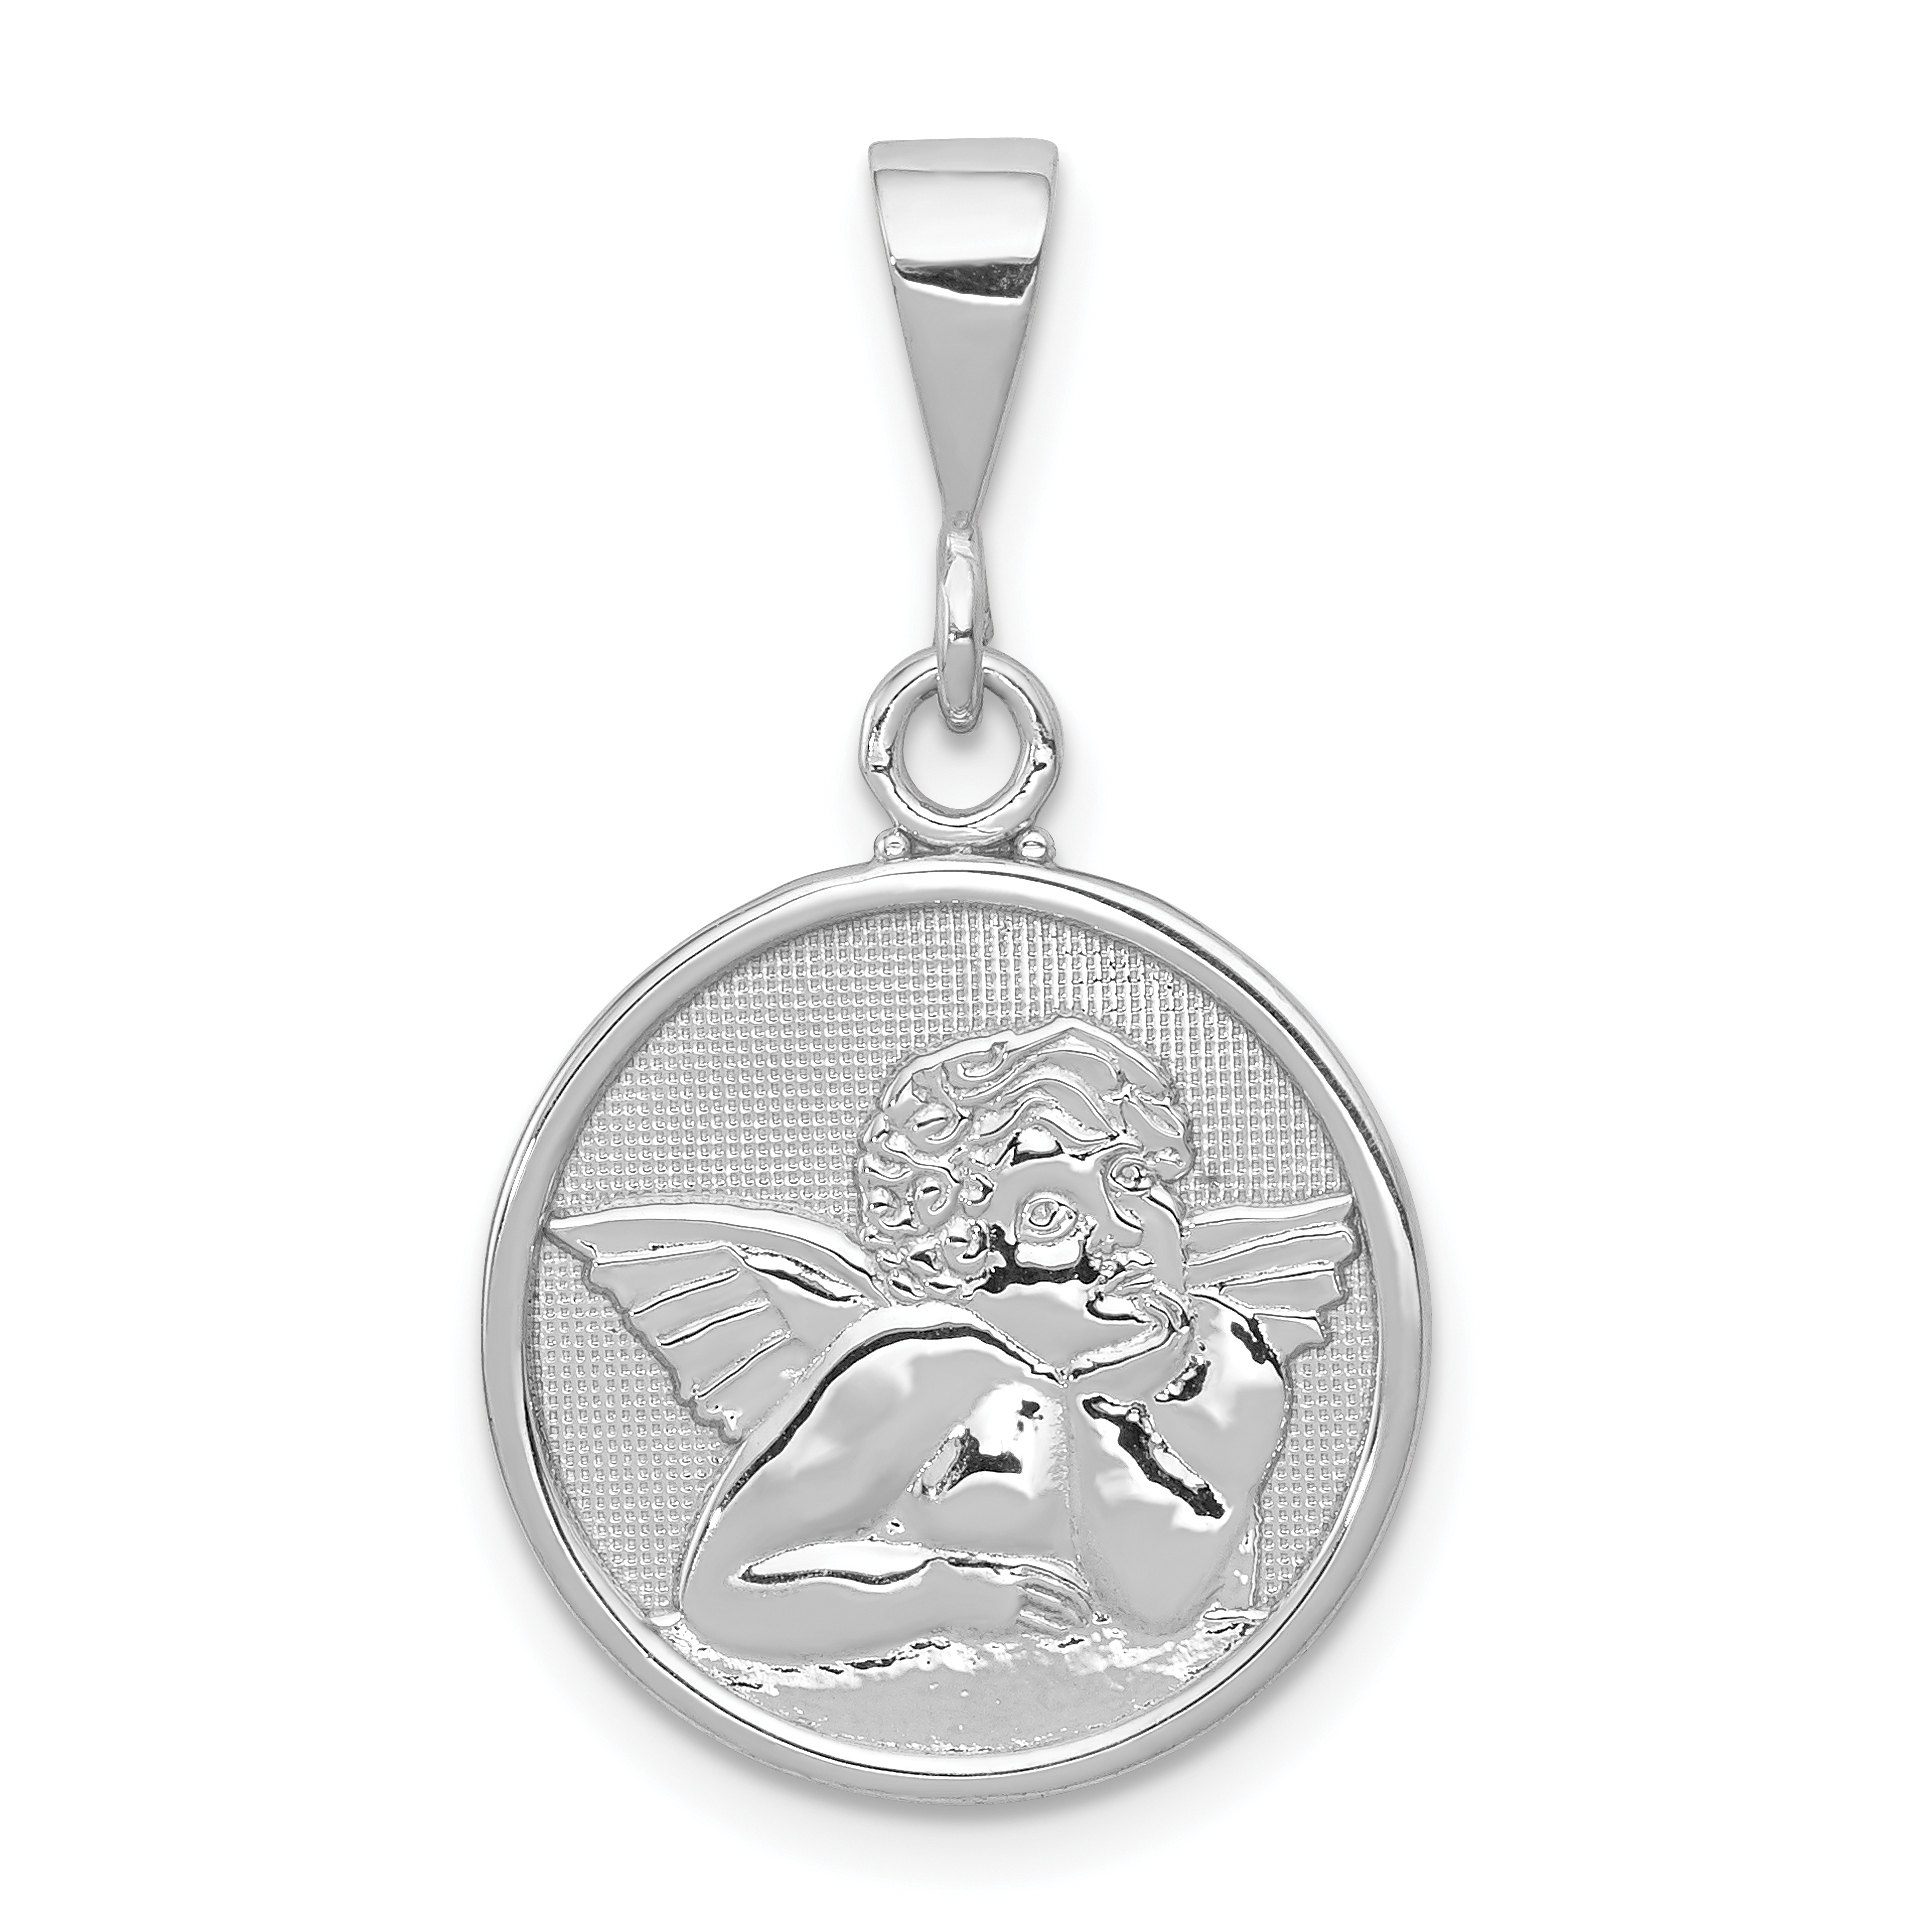 14k White Gold Polished & Satin Angel Pendant. Weight: 1.53, Length: 29, Width: 16